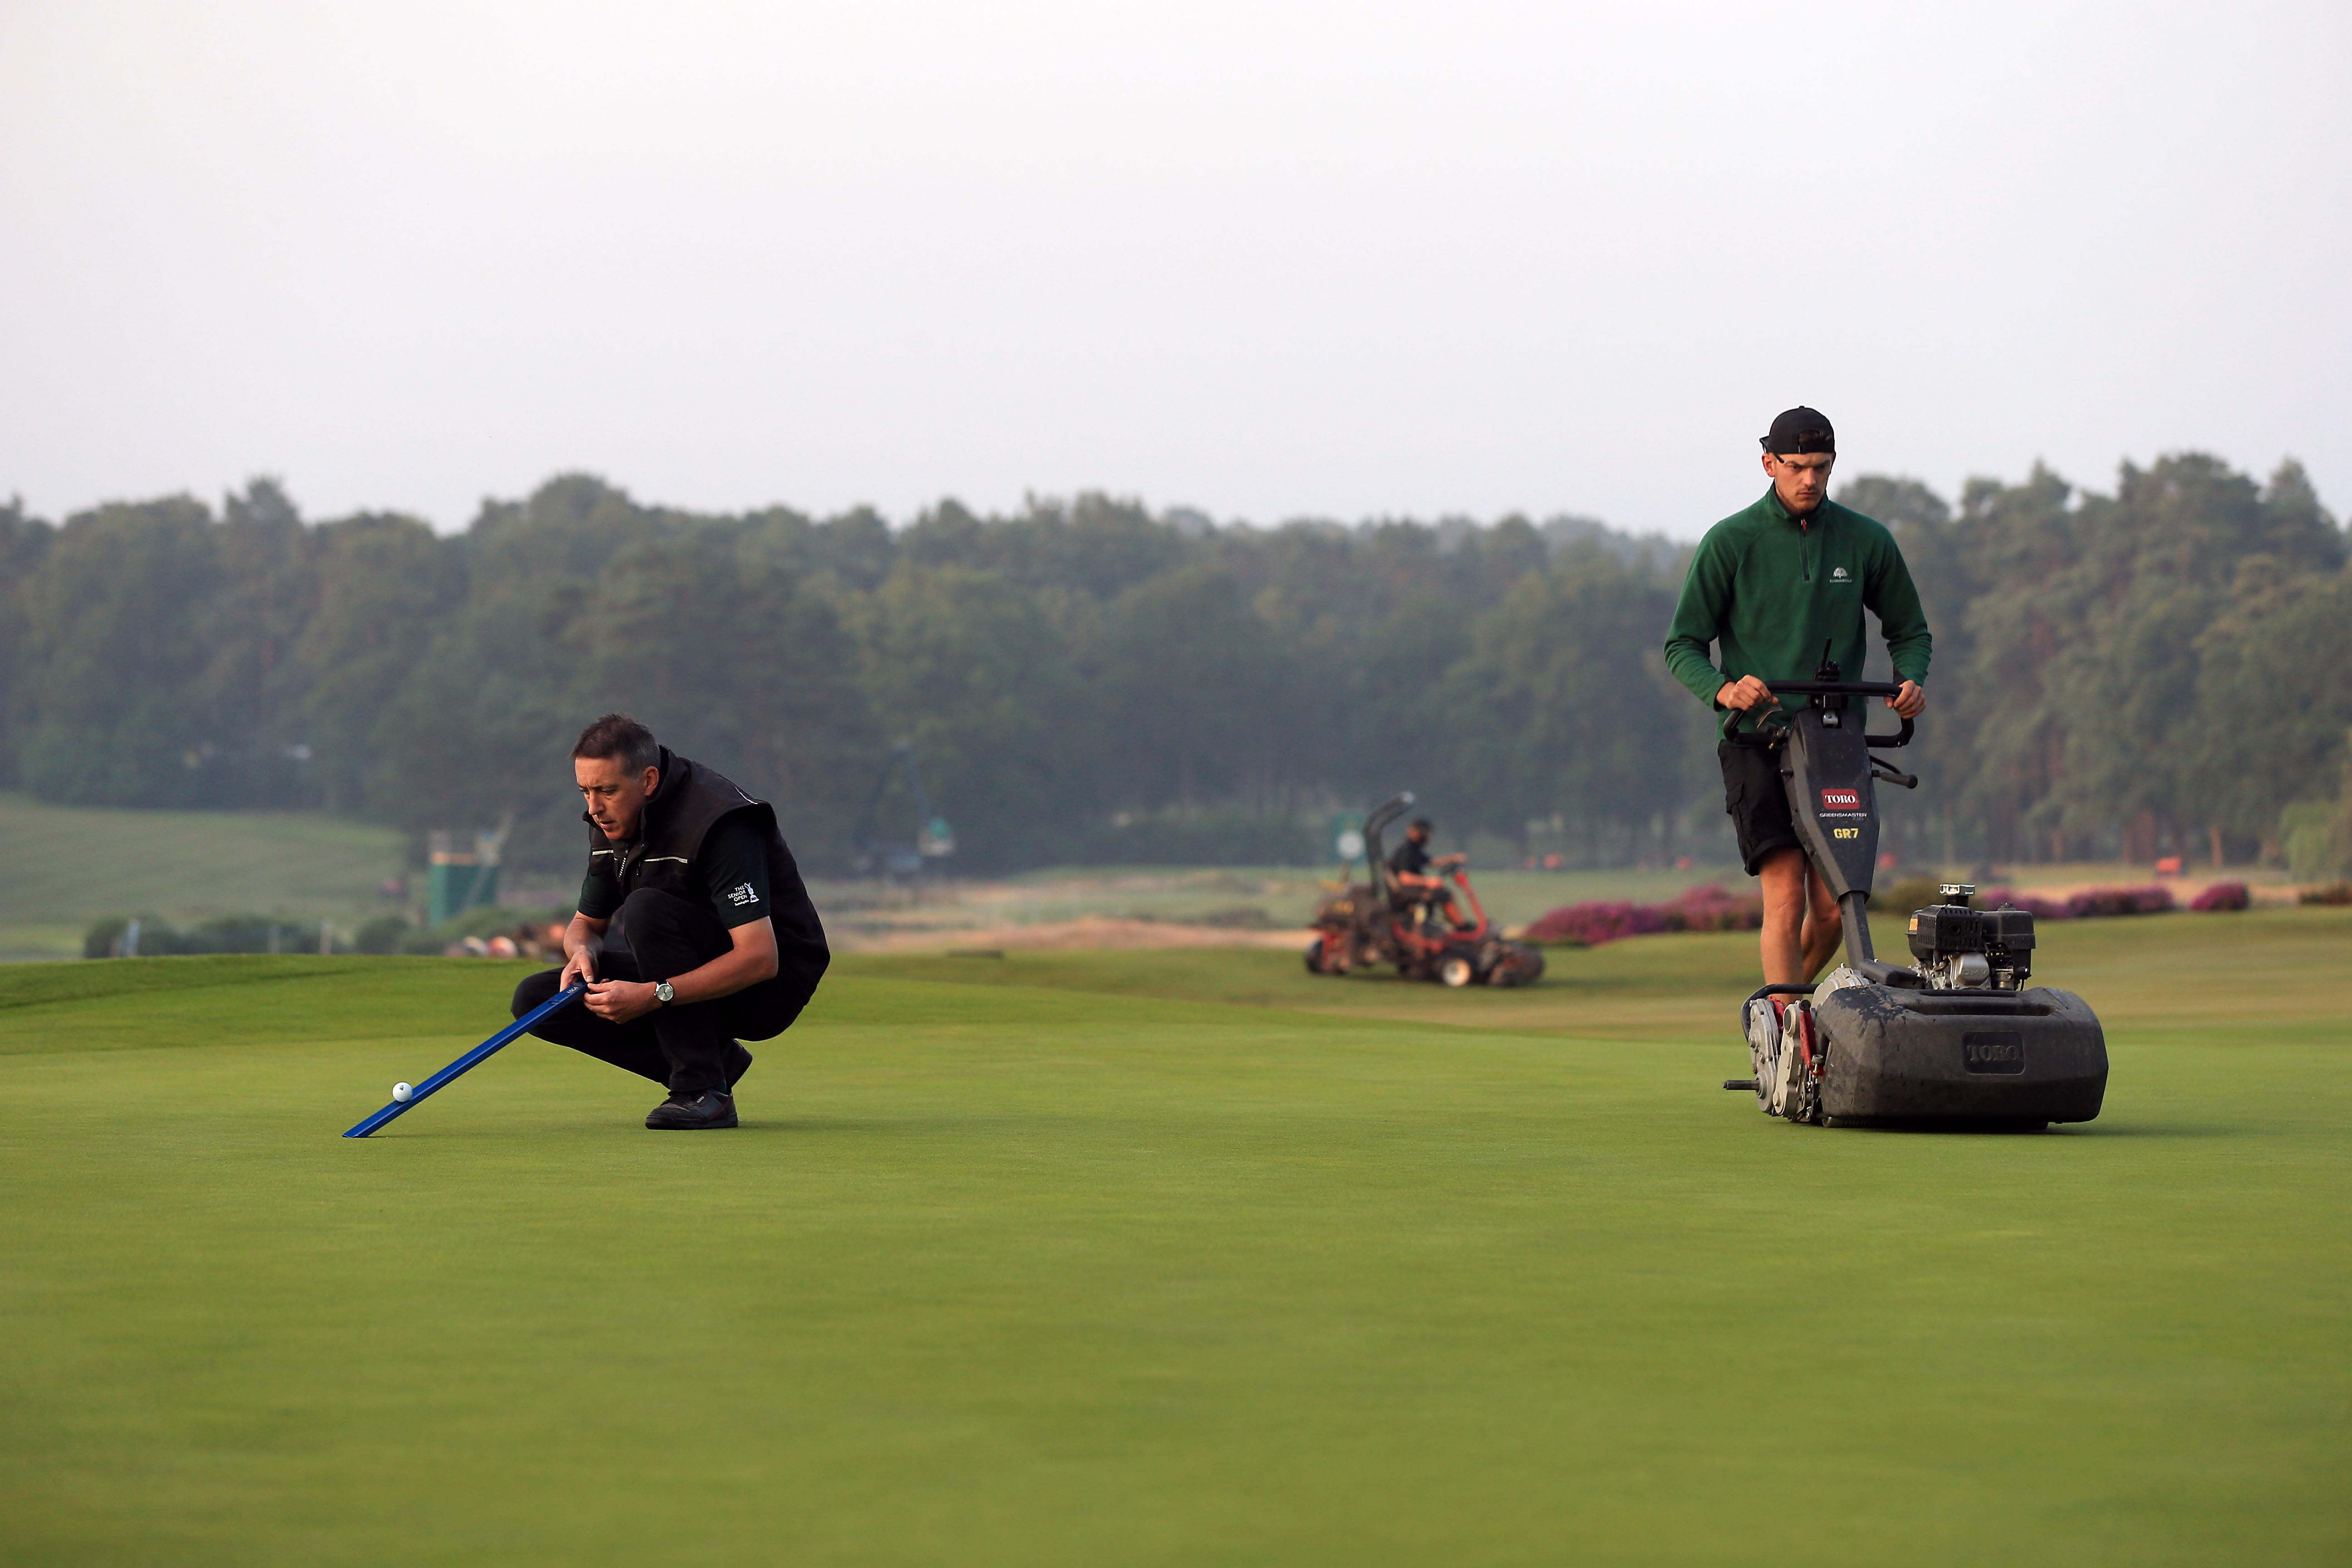 <p>SUNNINGDALE, ENGLAND - JULY 22: Ground staff prepare the 18th green ahead of the first day of The Senior Open Presented by Rolex at Sunningdale Golf Club on July 22, 2021 in Sunningdale, England. (Photo by Stephen Pond/Getty Images)</p>